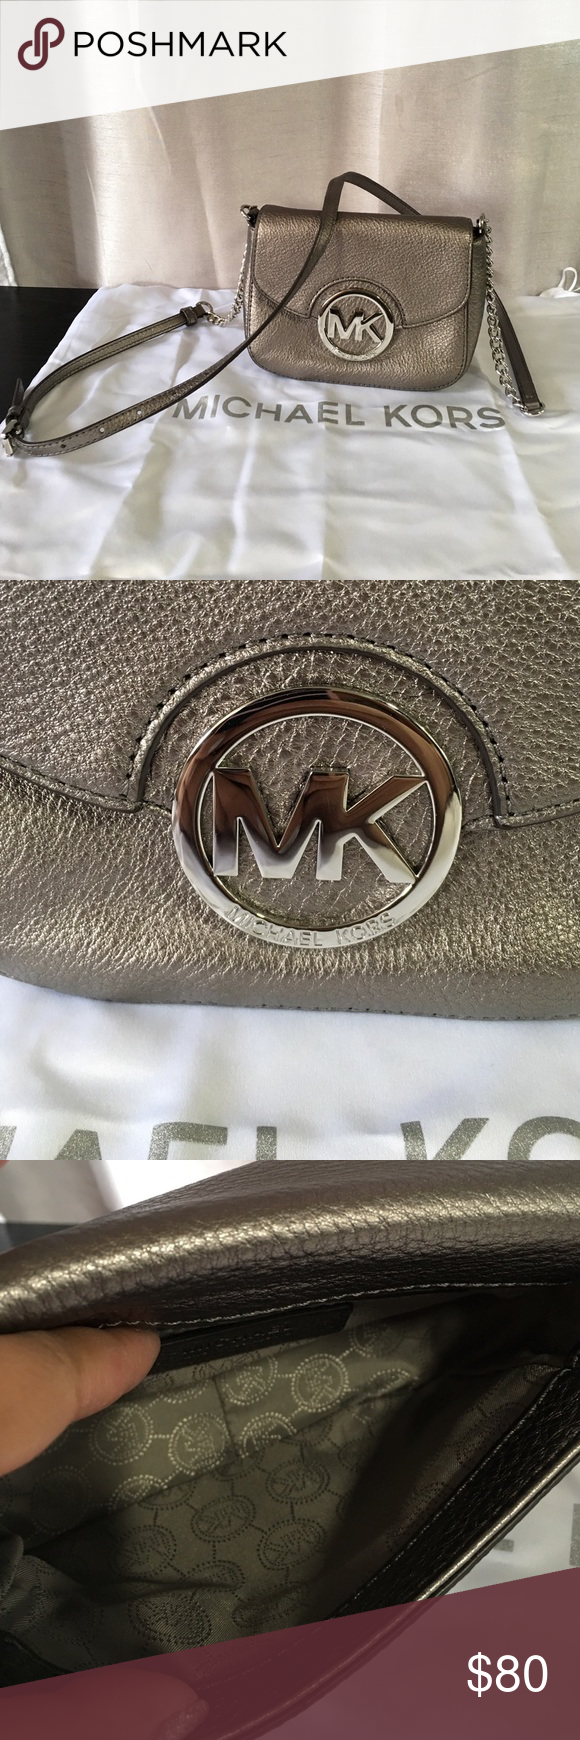 Michael Kors Fulton Crossbody Michael Kors Fulton Small Crossbody. Color; Gunmetal. Snap closure. 1 interior slip pocket and 1 exterior slip pocket. Lightly used. MICHAEL Michael Kors Bags Crossbody Bags